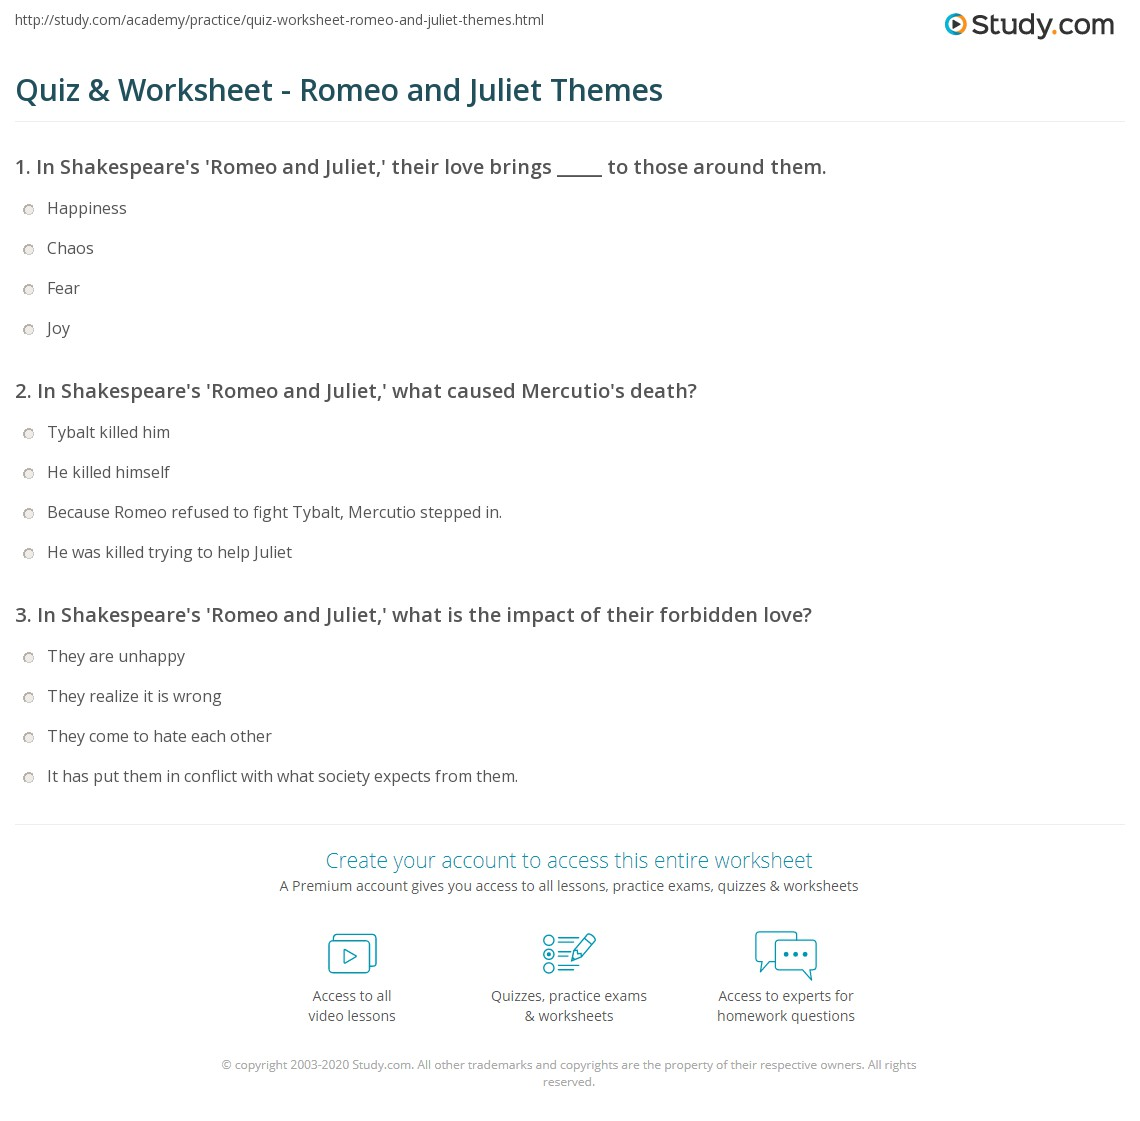 Quiz & Worksheet - Romeo and Juliet Themes | Study com